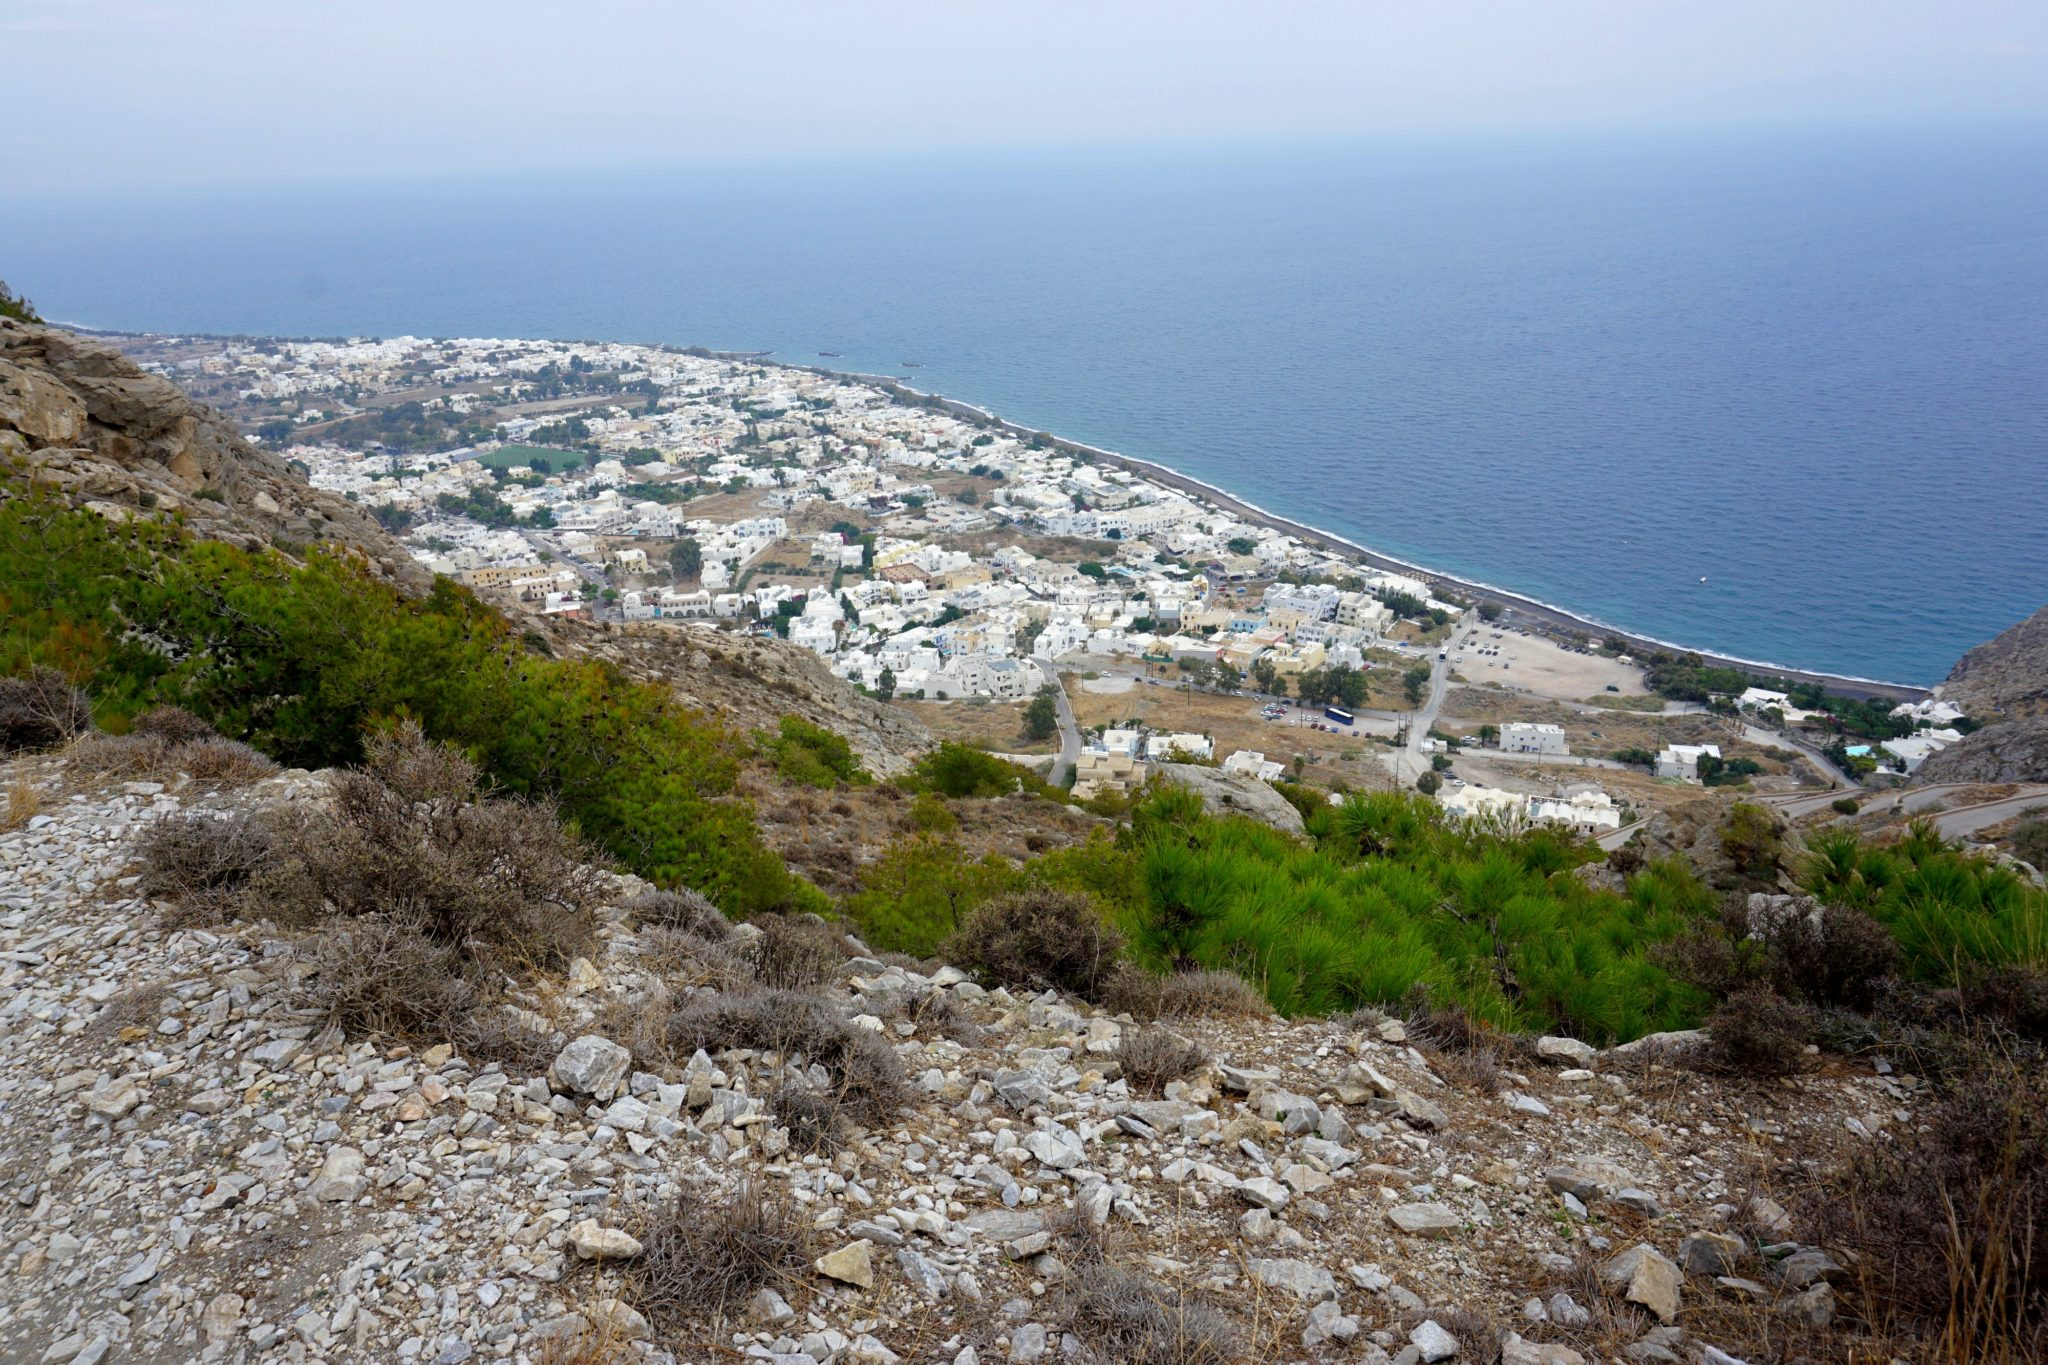 View of Kamari from the hiking trail.